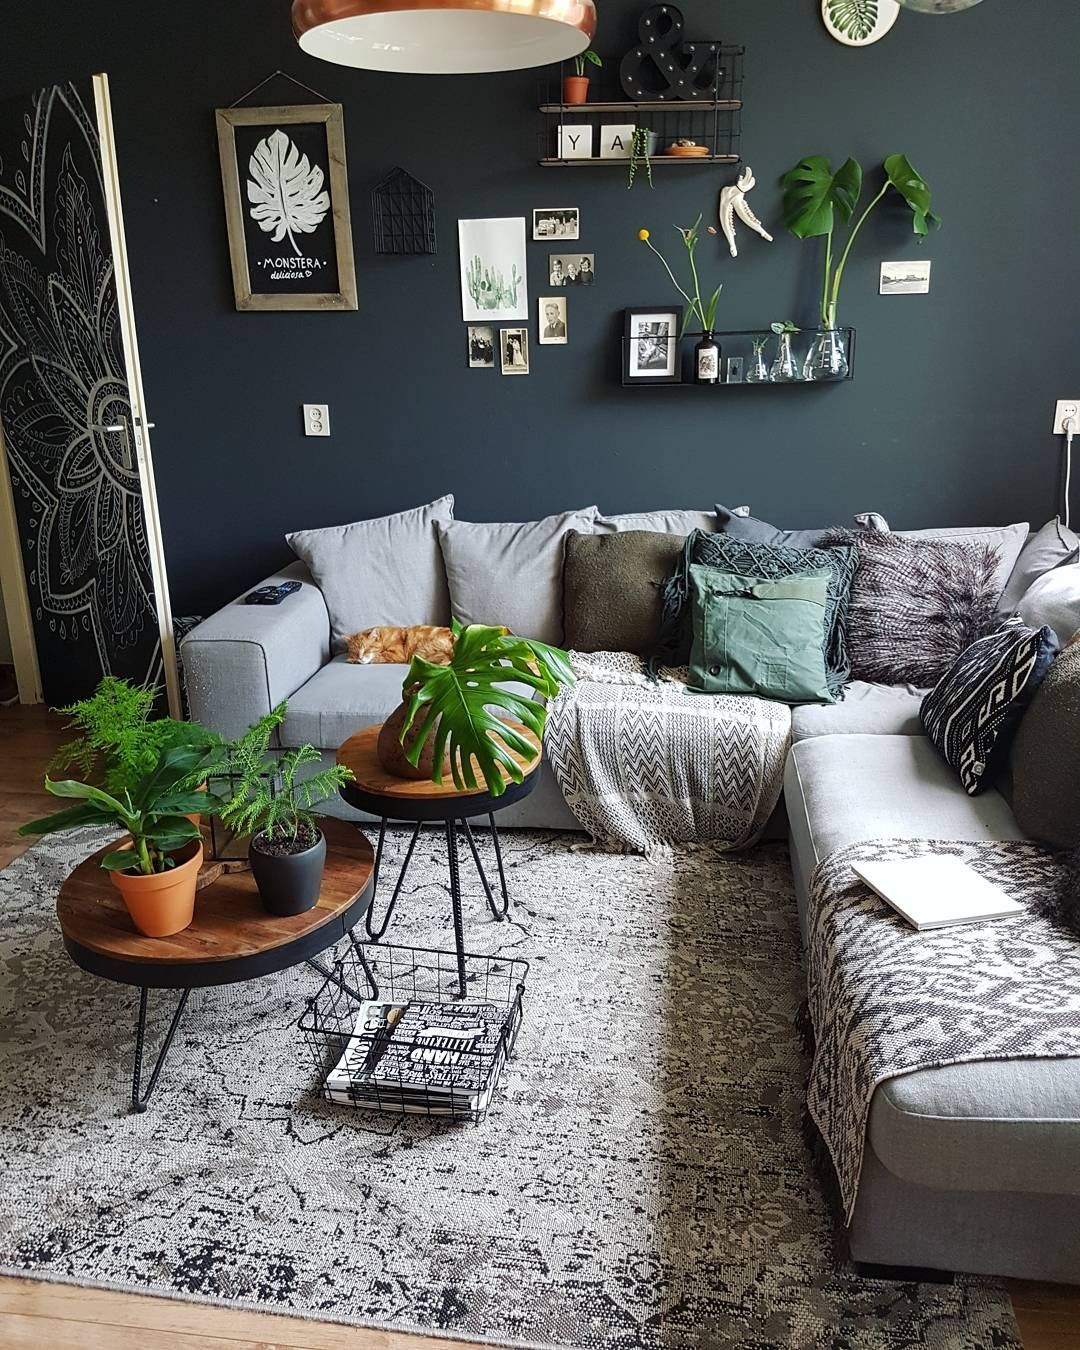 Living room boho urban jungle mostera green dark plants inspiration boho in 2019 d co salon for Urban boho style living room